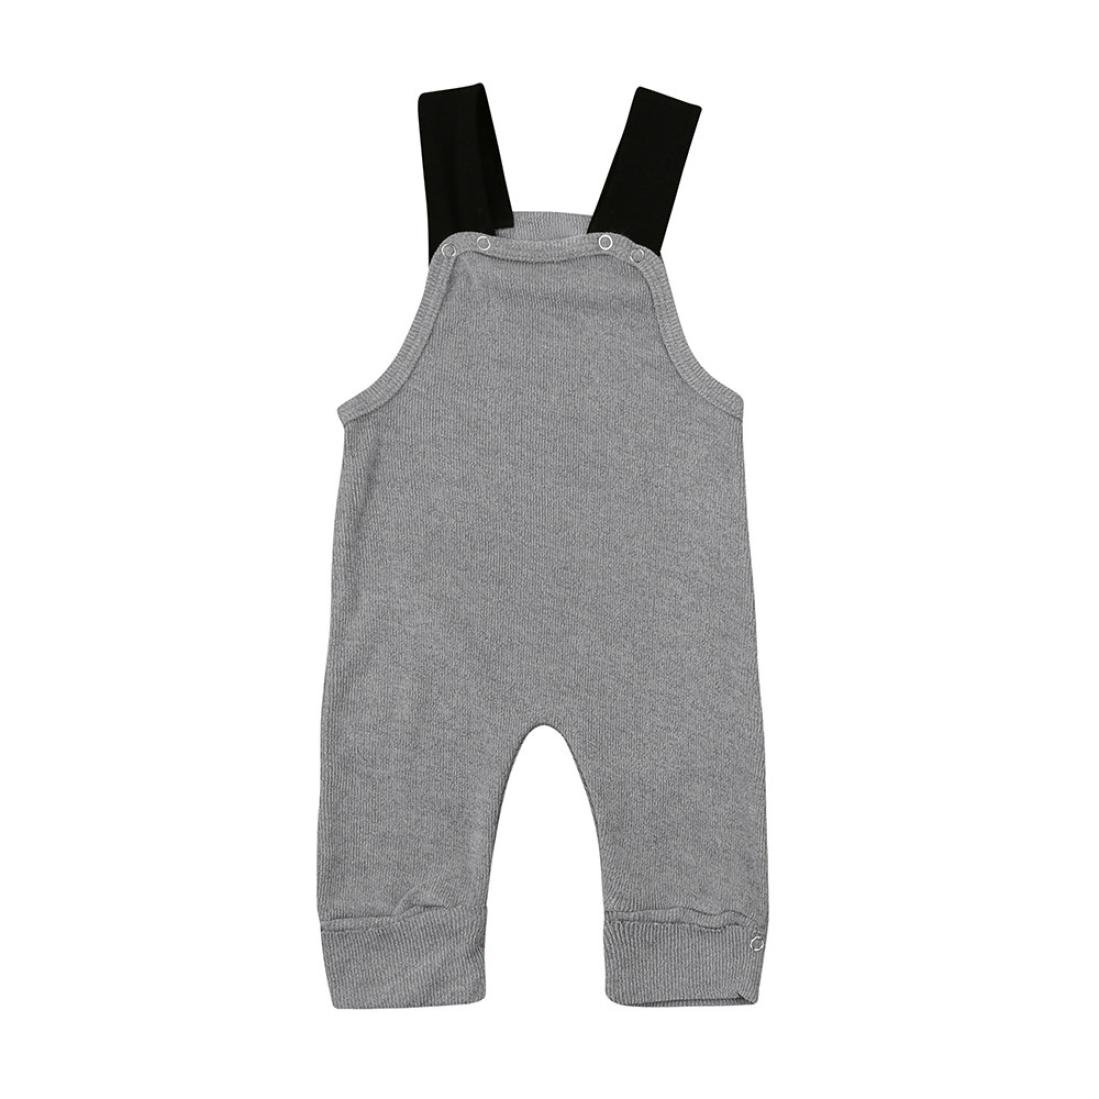 87d295440a78d Sikye Little Boy Overalls Newborn Baby Knitted Rompers Jumpsuit Sleeveless  Outfits